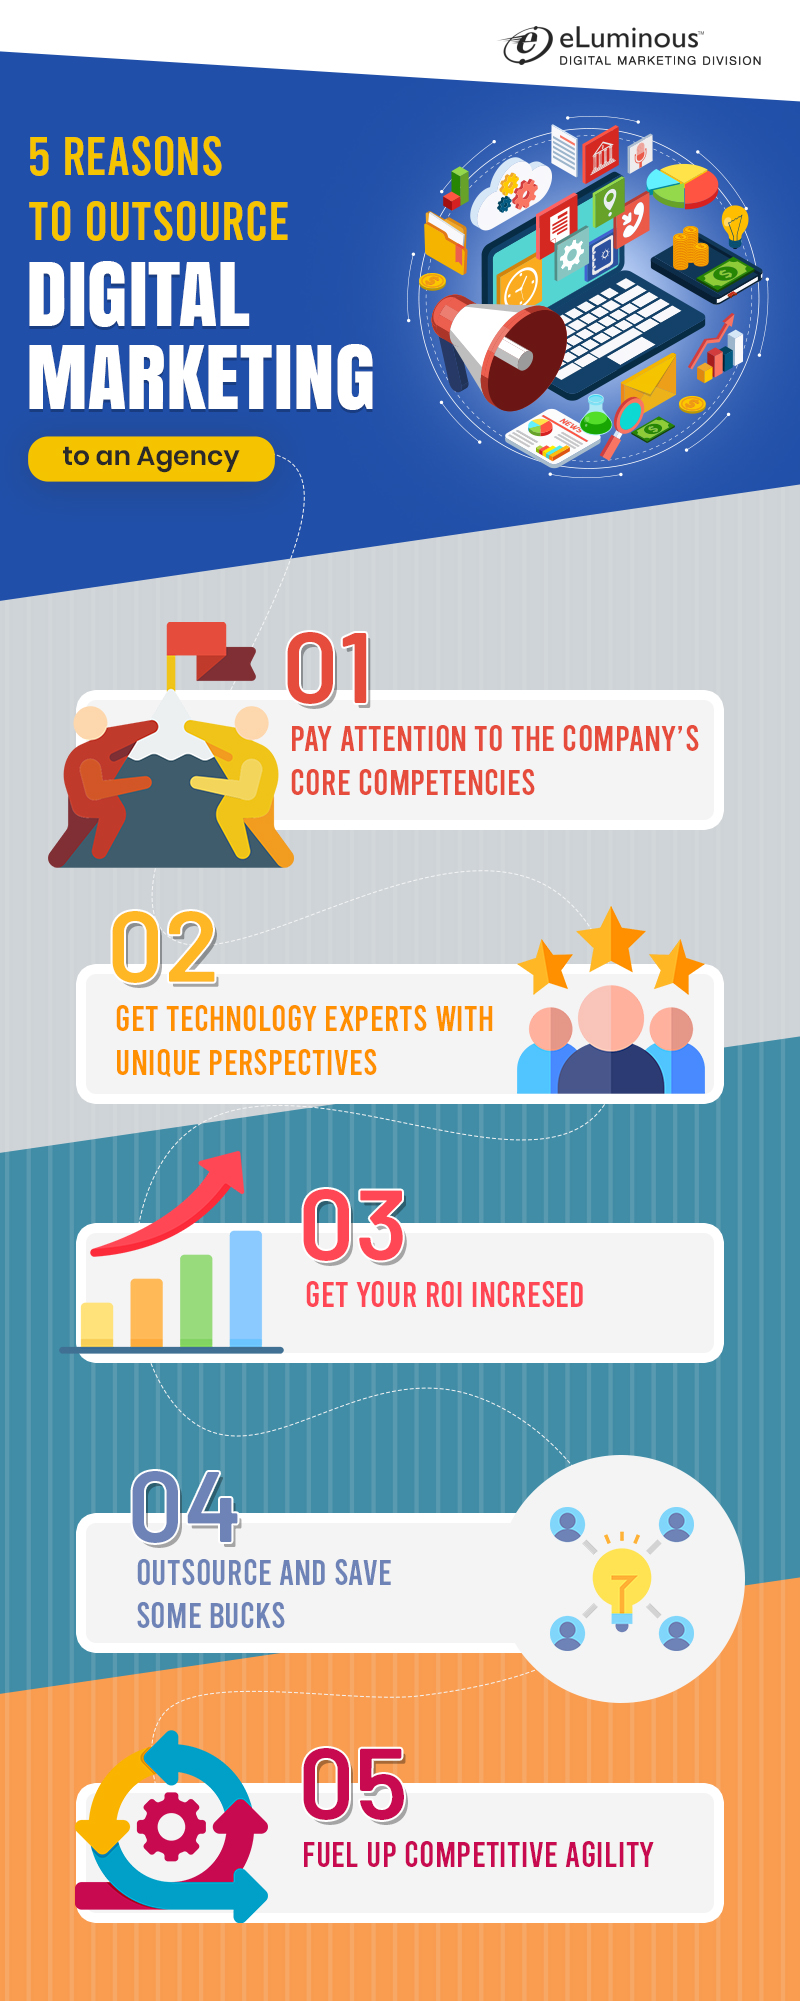 Outsource Your Digital Marketing to Agency